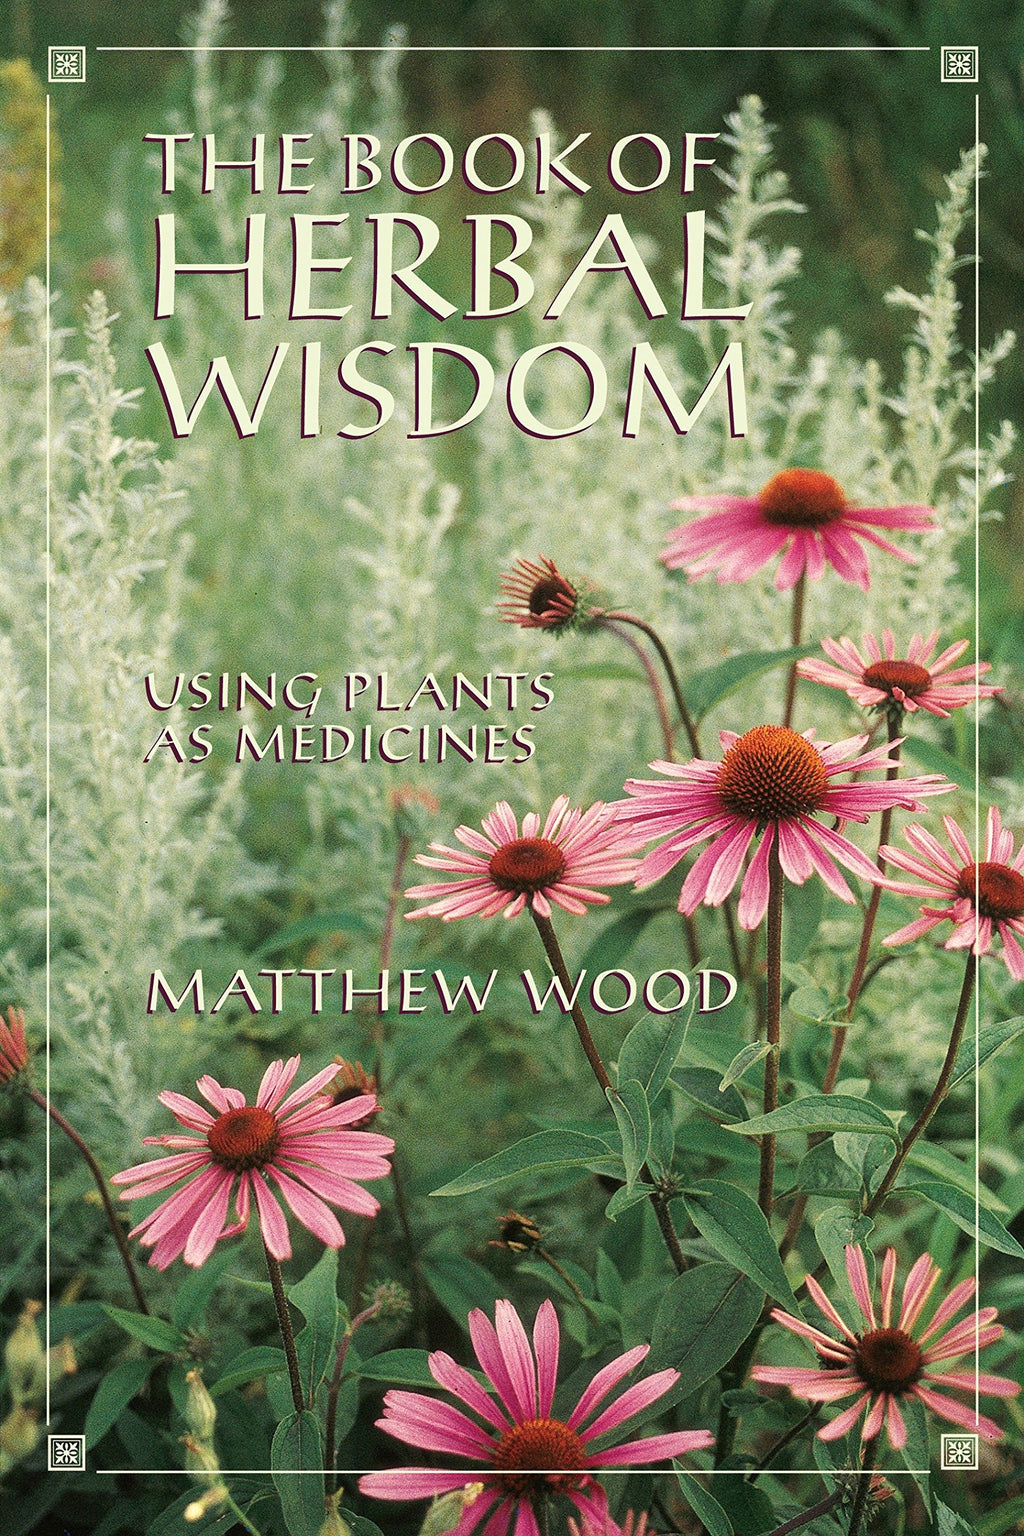 Book of Herbal Wisdom by Matthew Wood